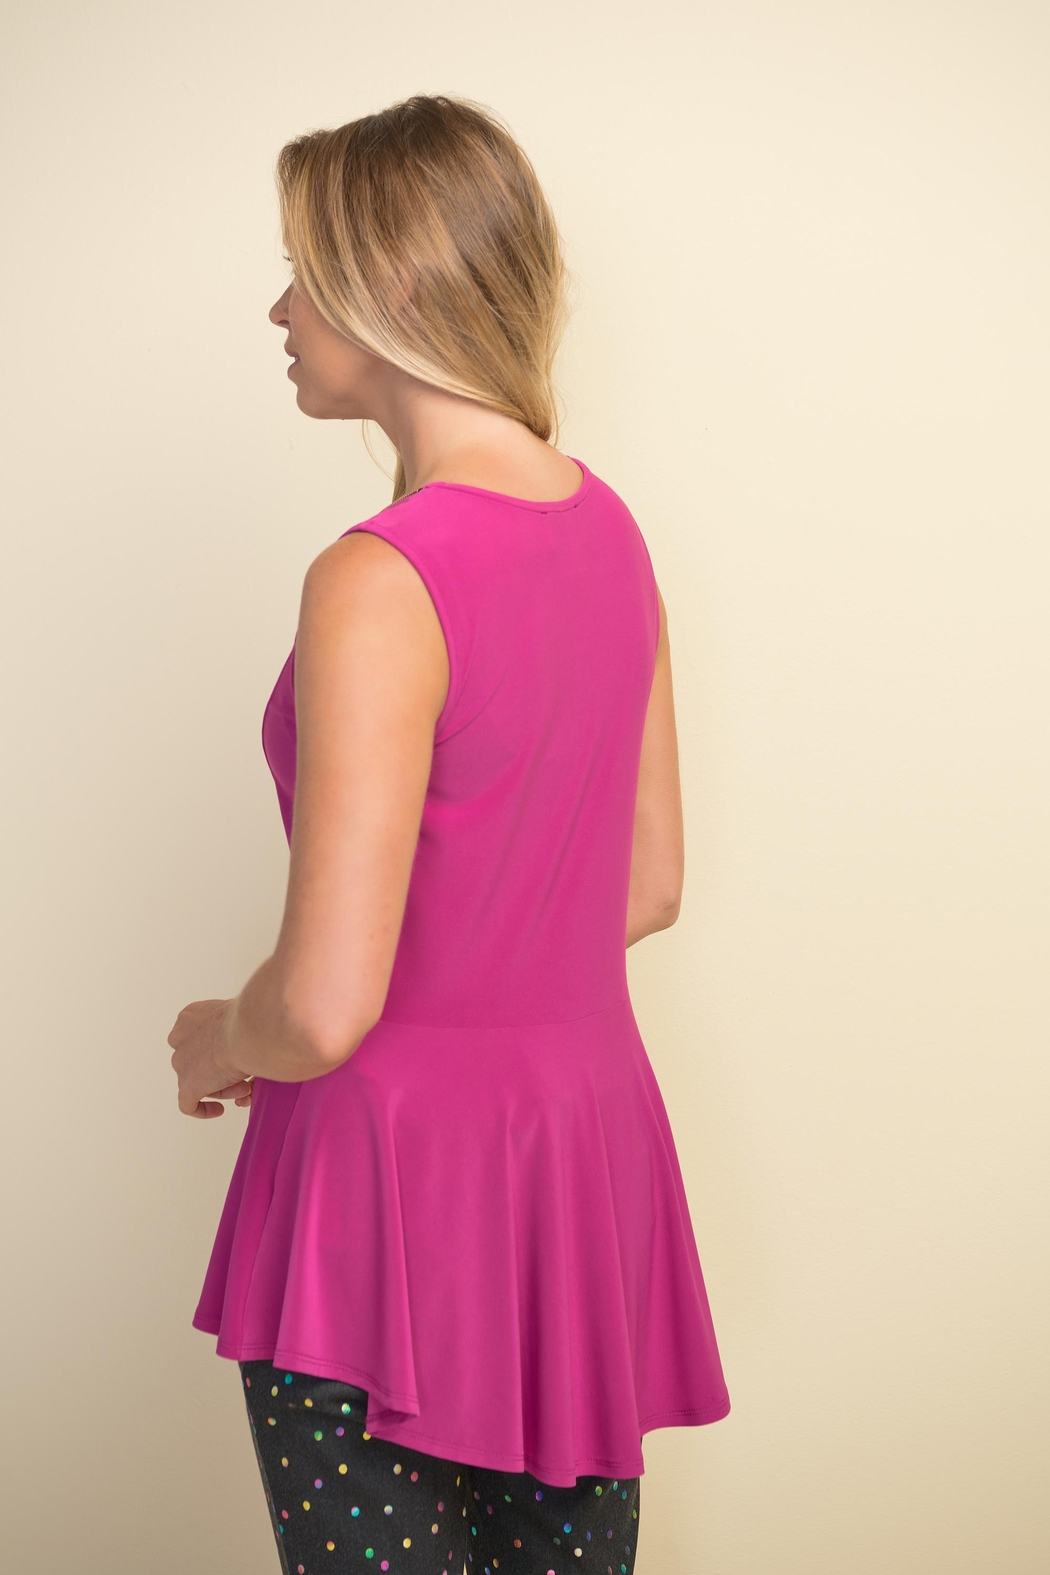 Joseph Ribkoff Orchid Sleeveless Top - Side Cropped Image